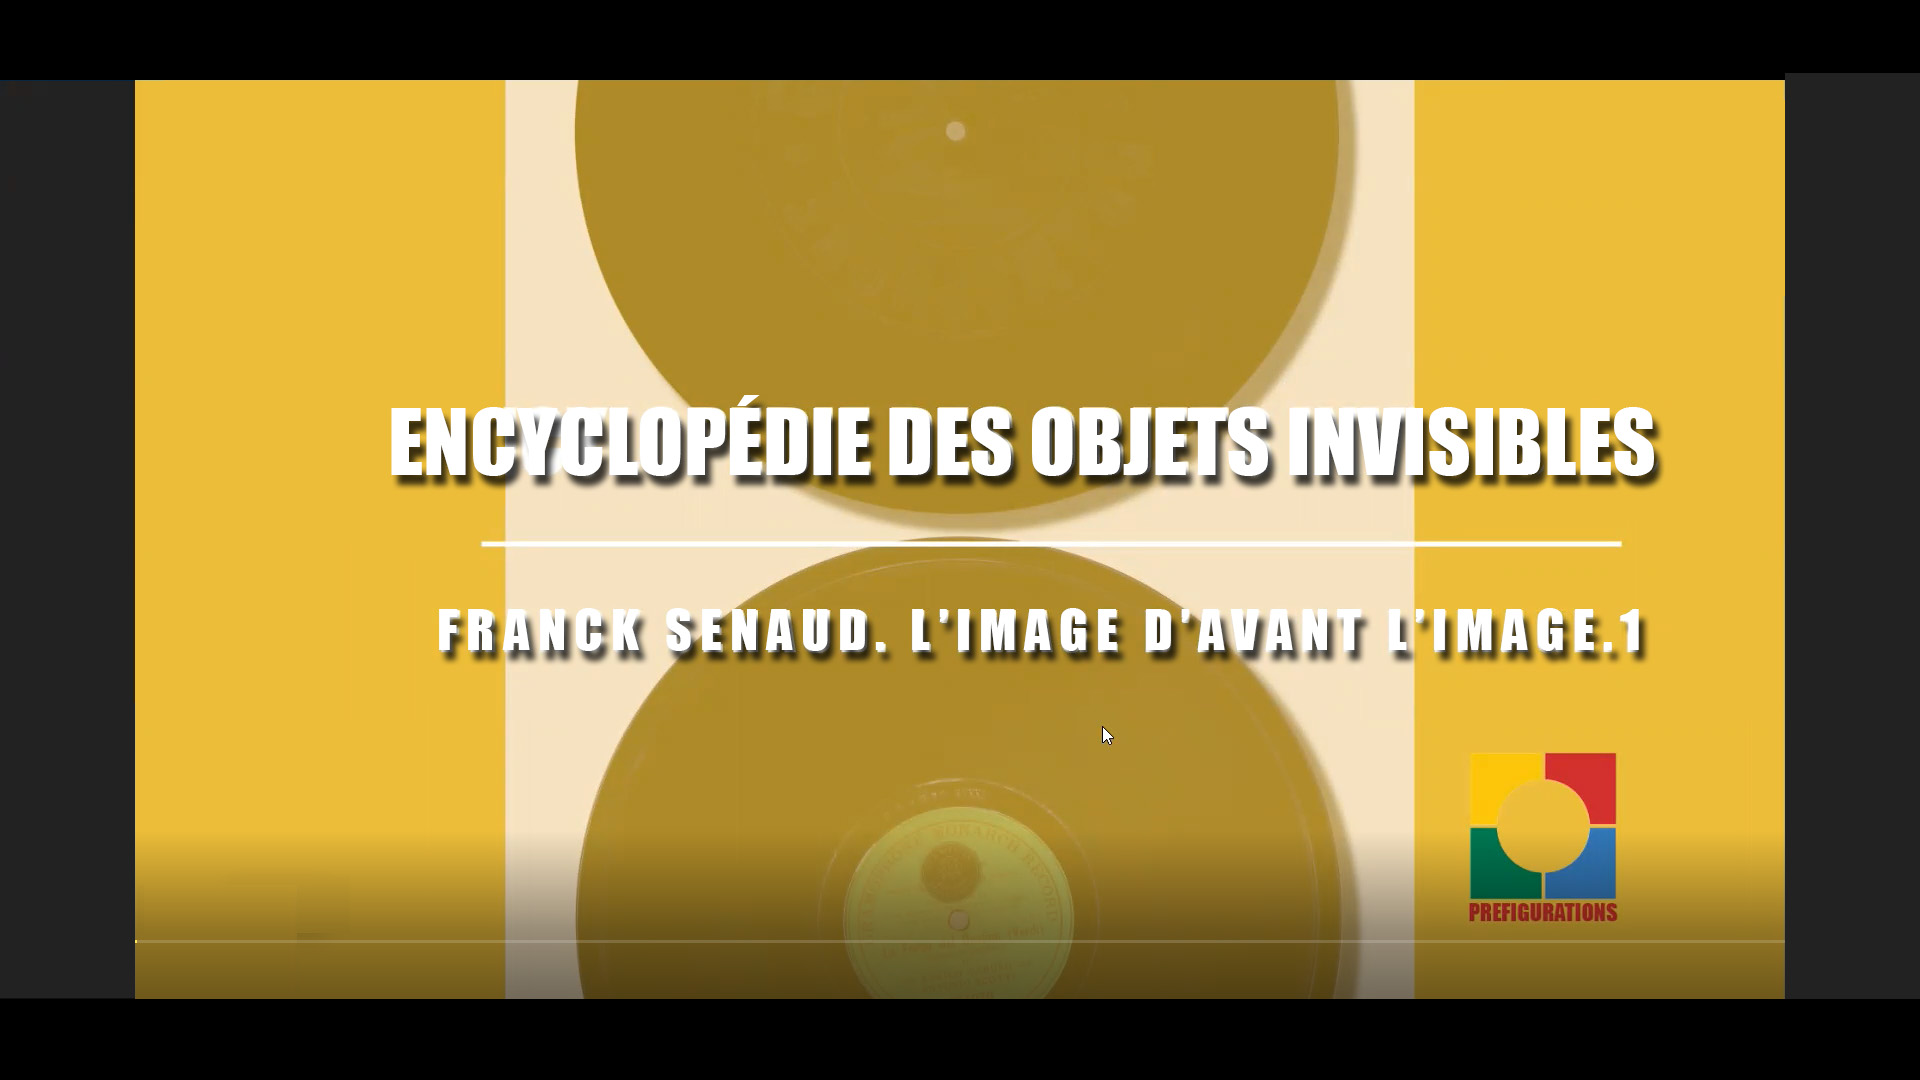 encyclopedie-des-objets-invisibles-limage-davant-limage